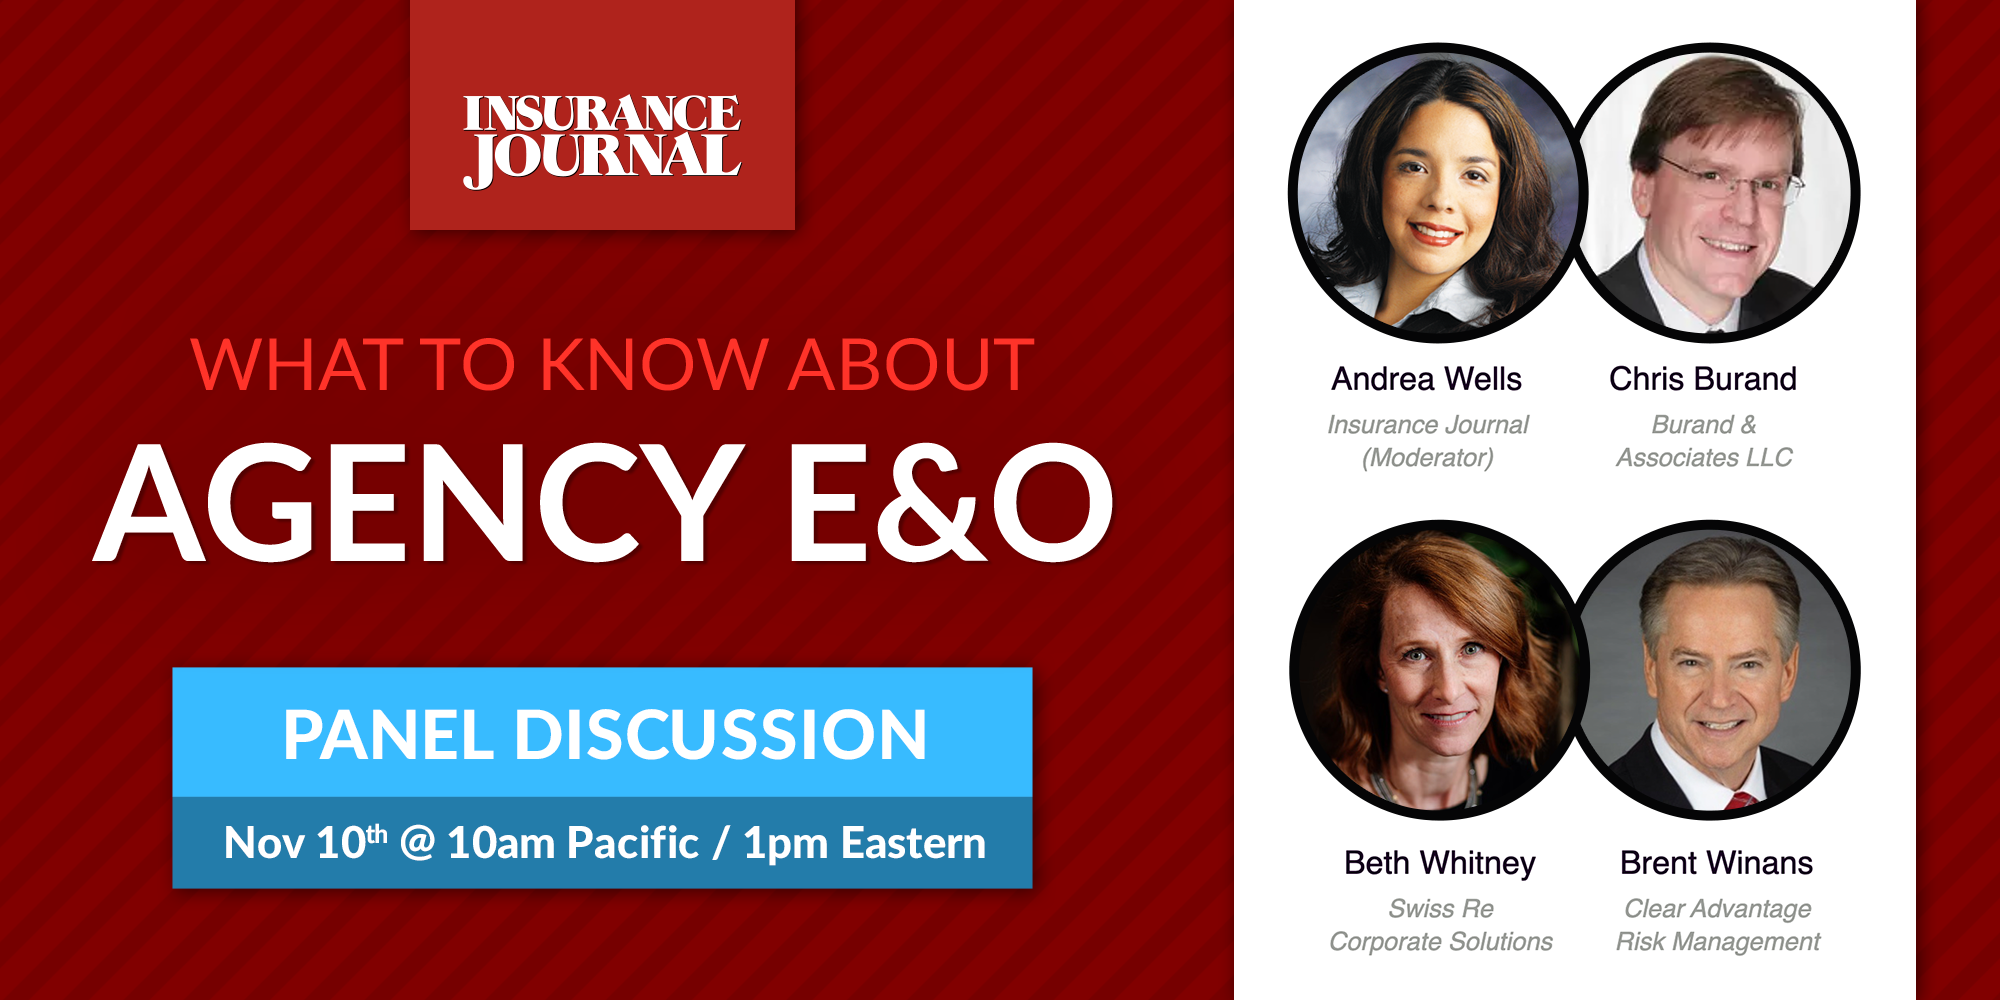 Agency E&O Webinar 11/10 at 1:00 EST